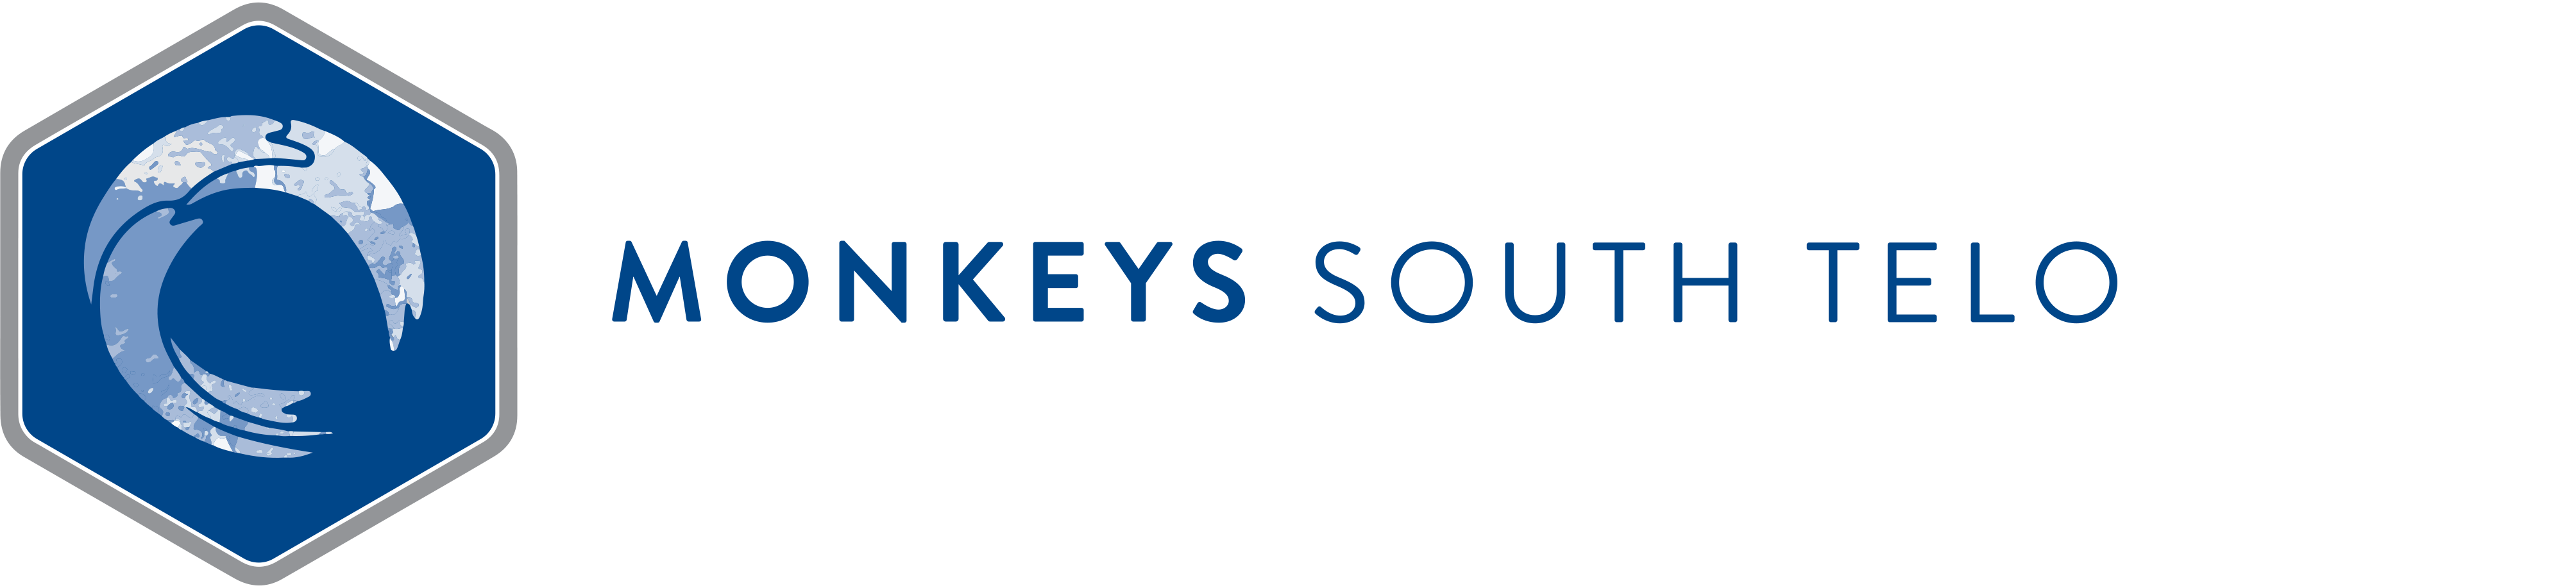 Monkeys_South_Telo_Logo